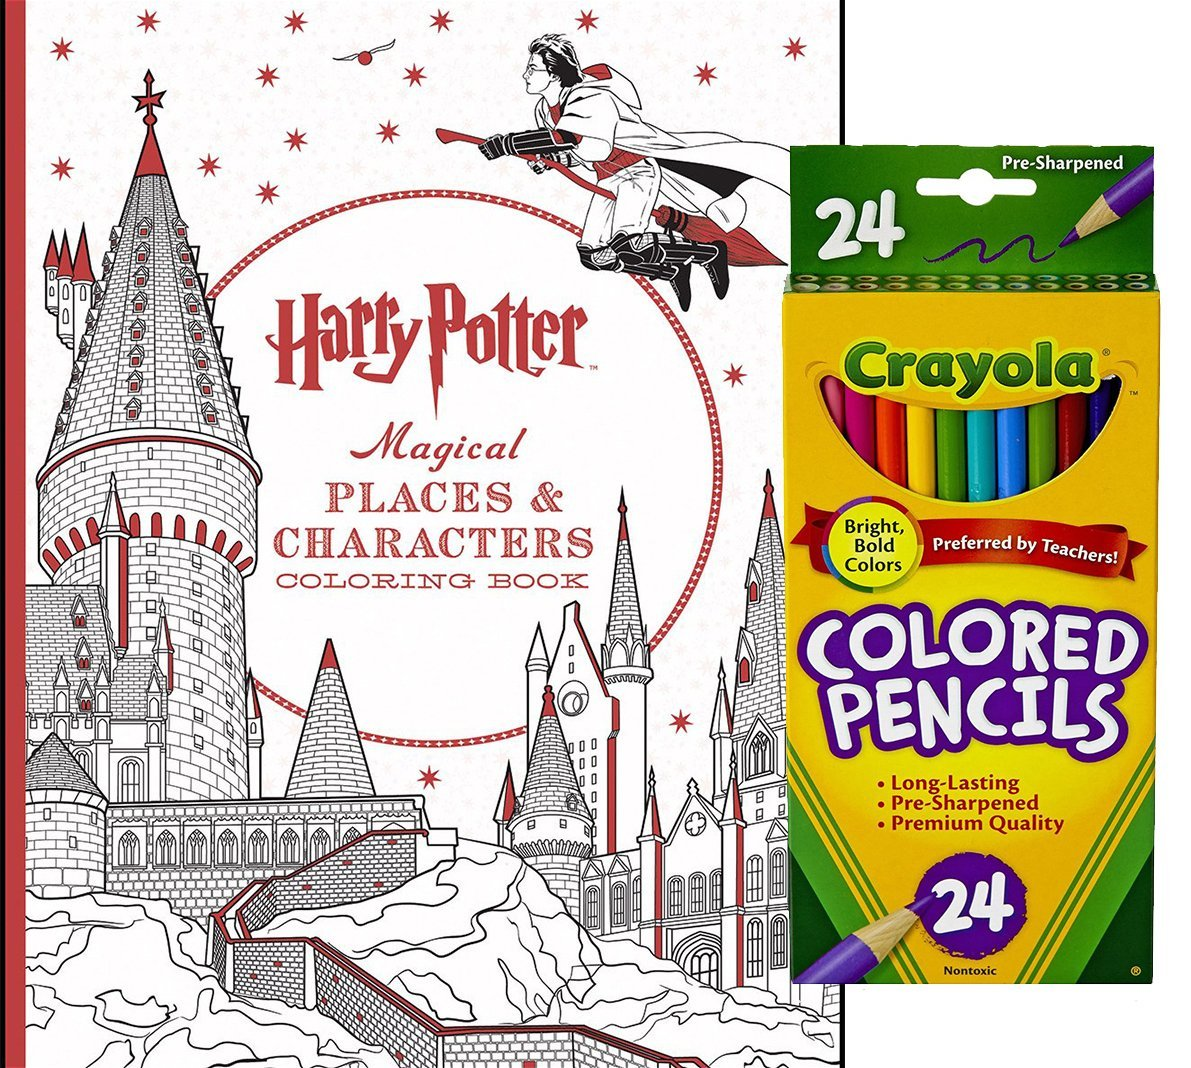 15 Magical Harry Potter Toys | www.onecrazyhouse.com